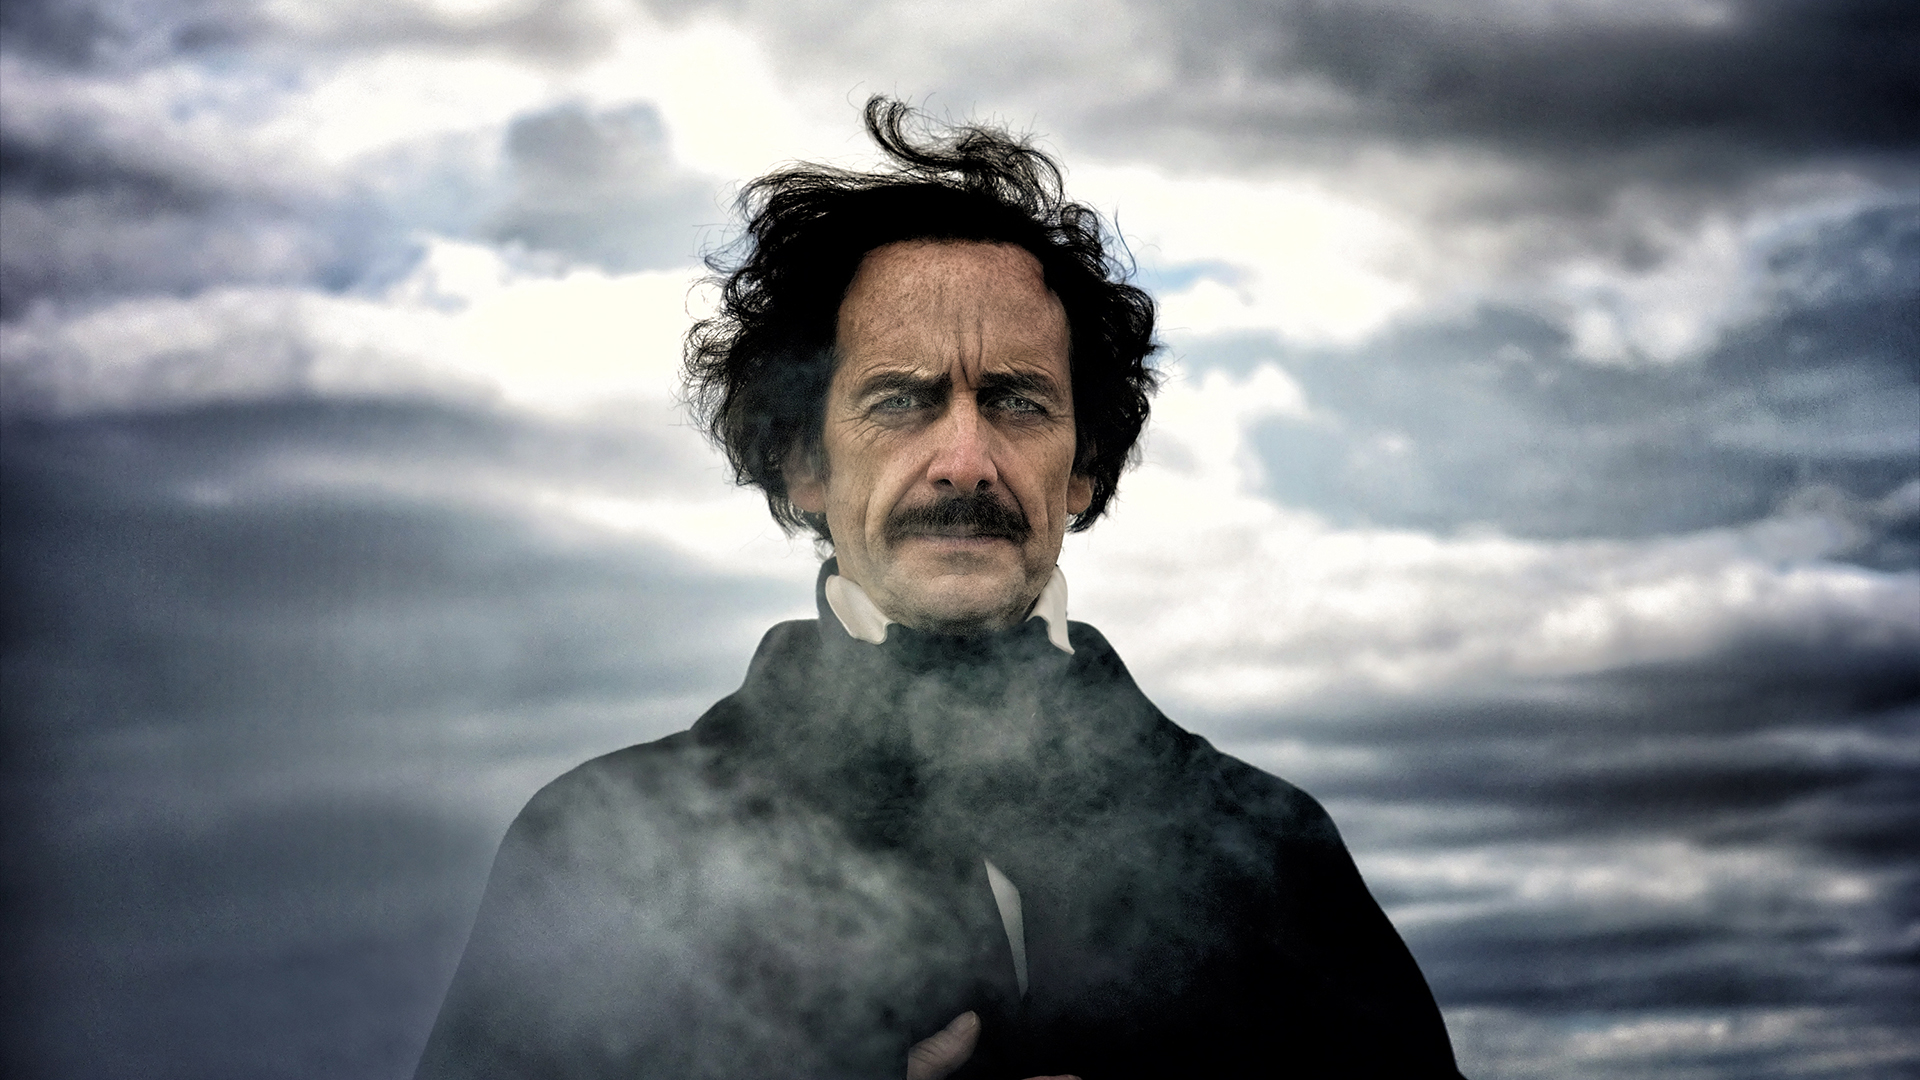 Edgar Allan Poe's life, legacy explored in Halloween-themed episode of 'American Masters'